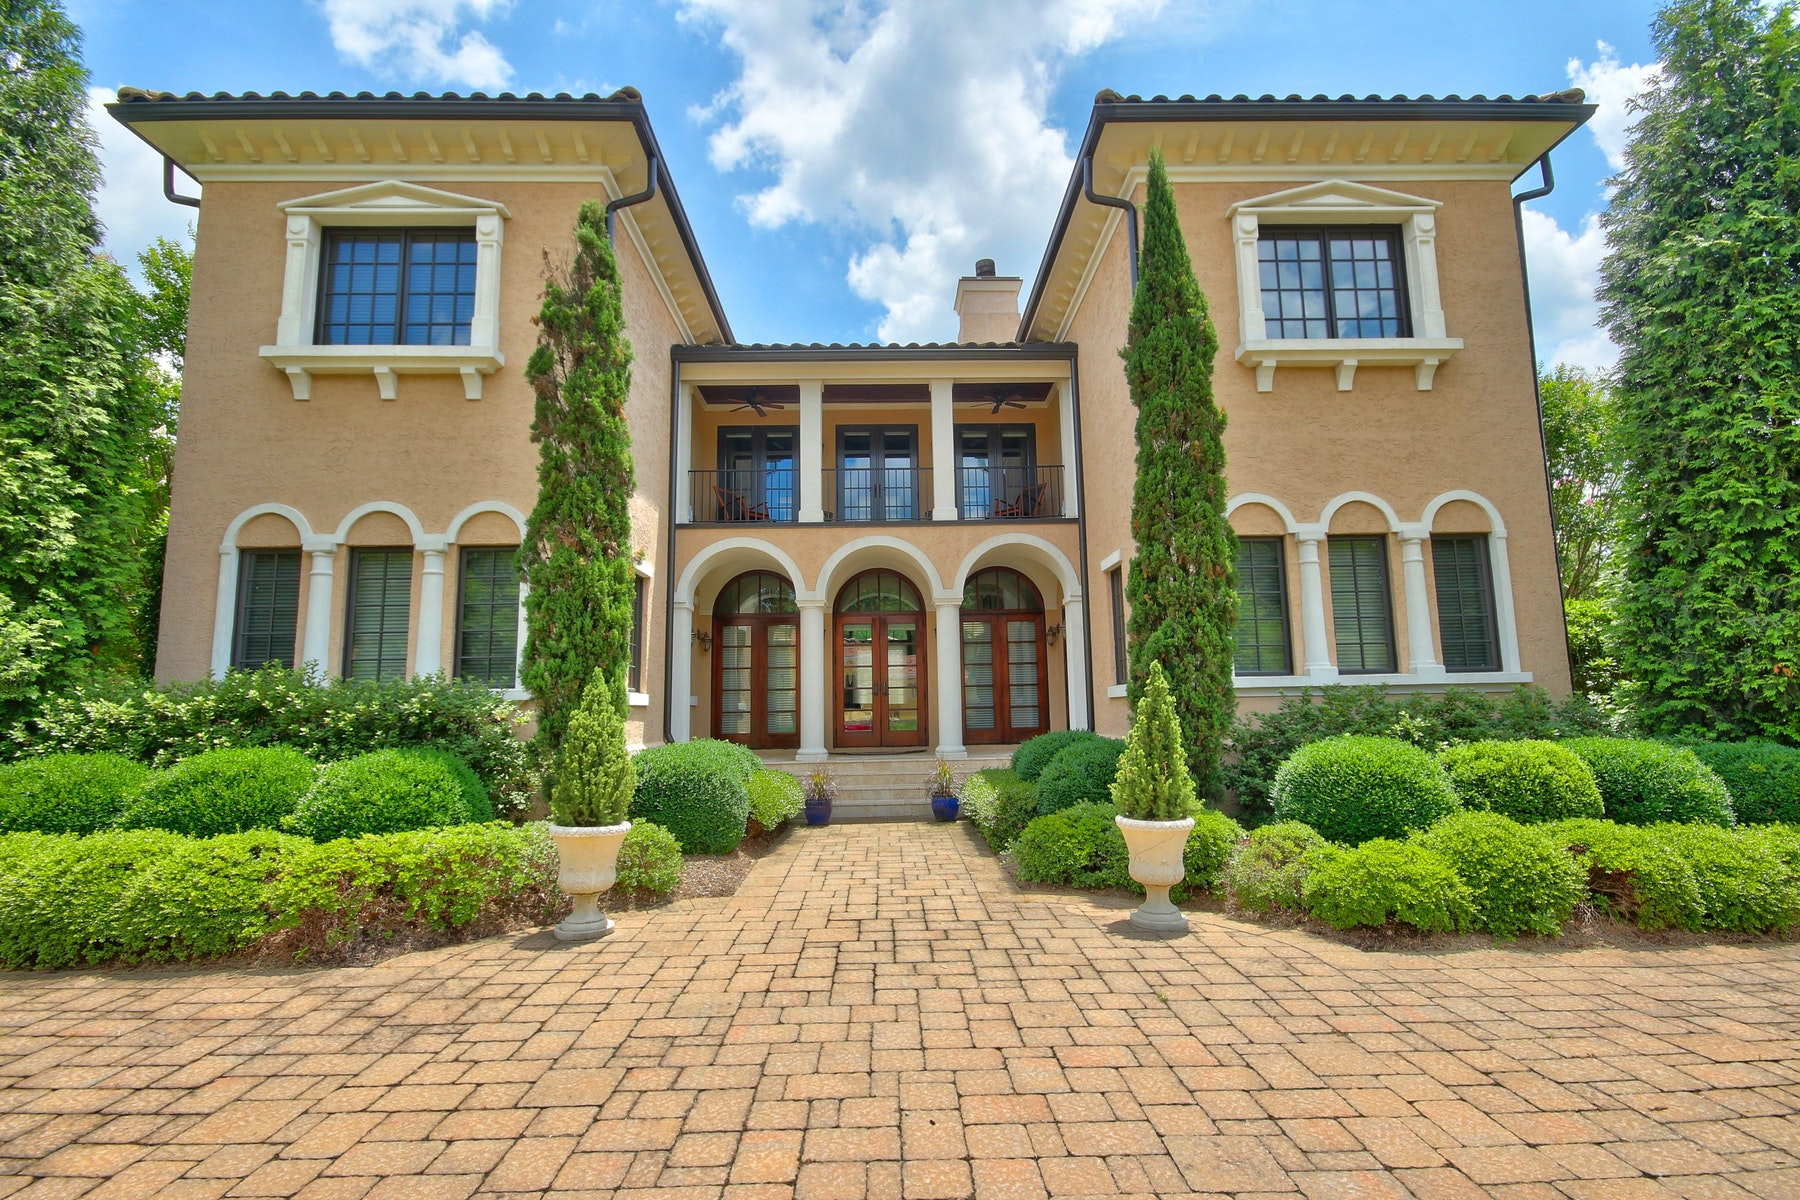 Single Family Home for Sale at Sophisticated Italianate Villa 9 Portofino Place Durham, North Carolina 27707 United StatesIn/Around: Raleigh, Cary, Chapel Hill